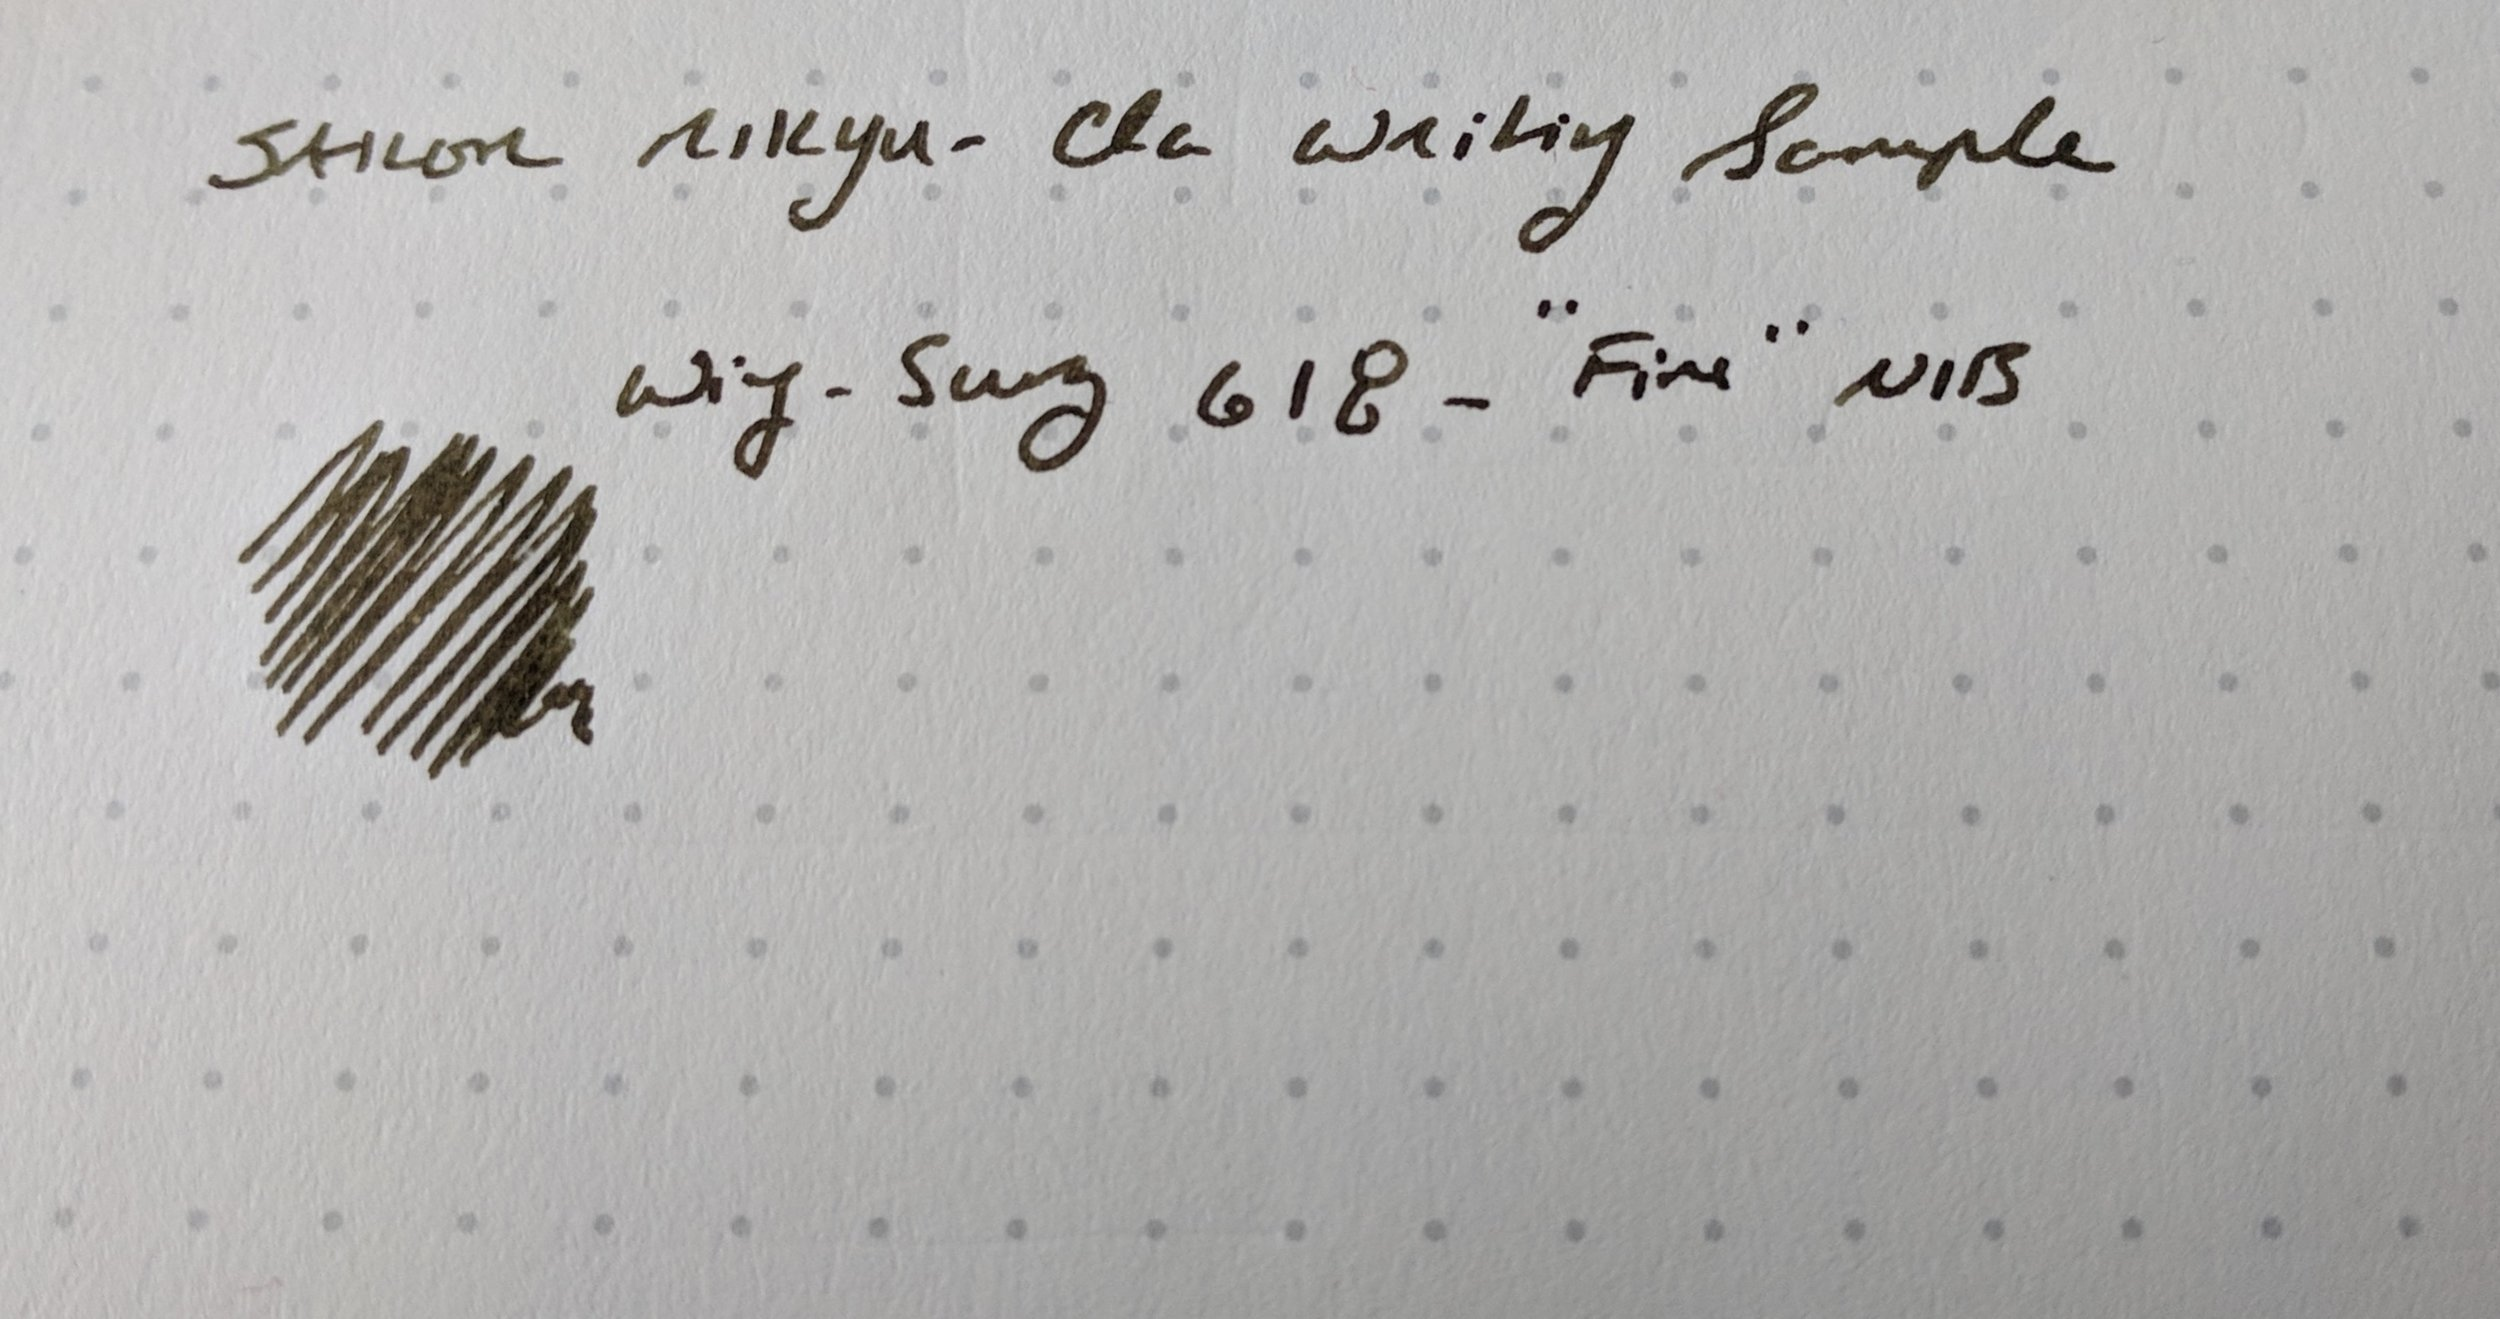 Sailor Rikyu-Cha Writing Sample